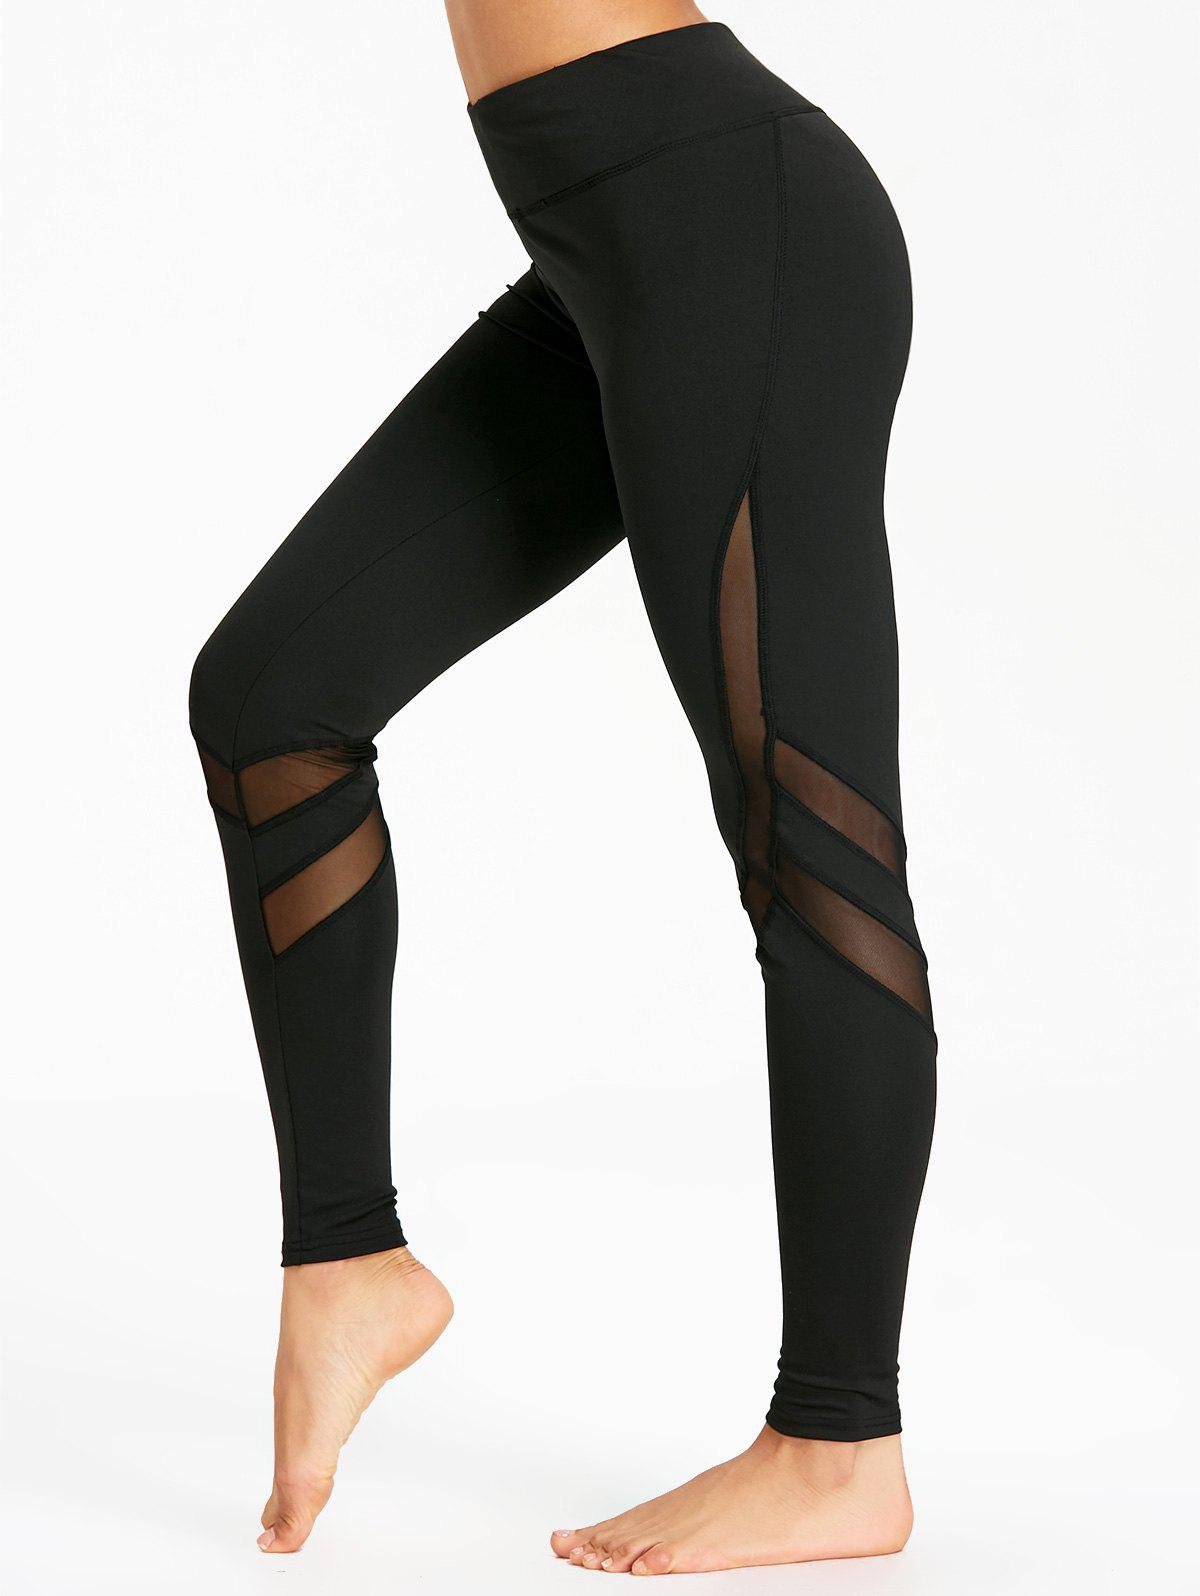 Affordable High Rise Workout Leggings with Mesh Panel